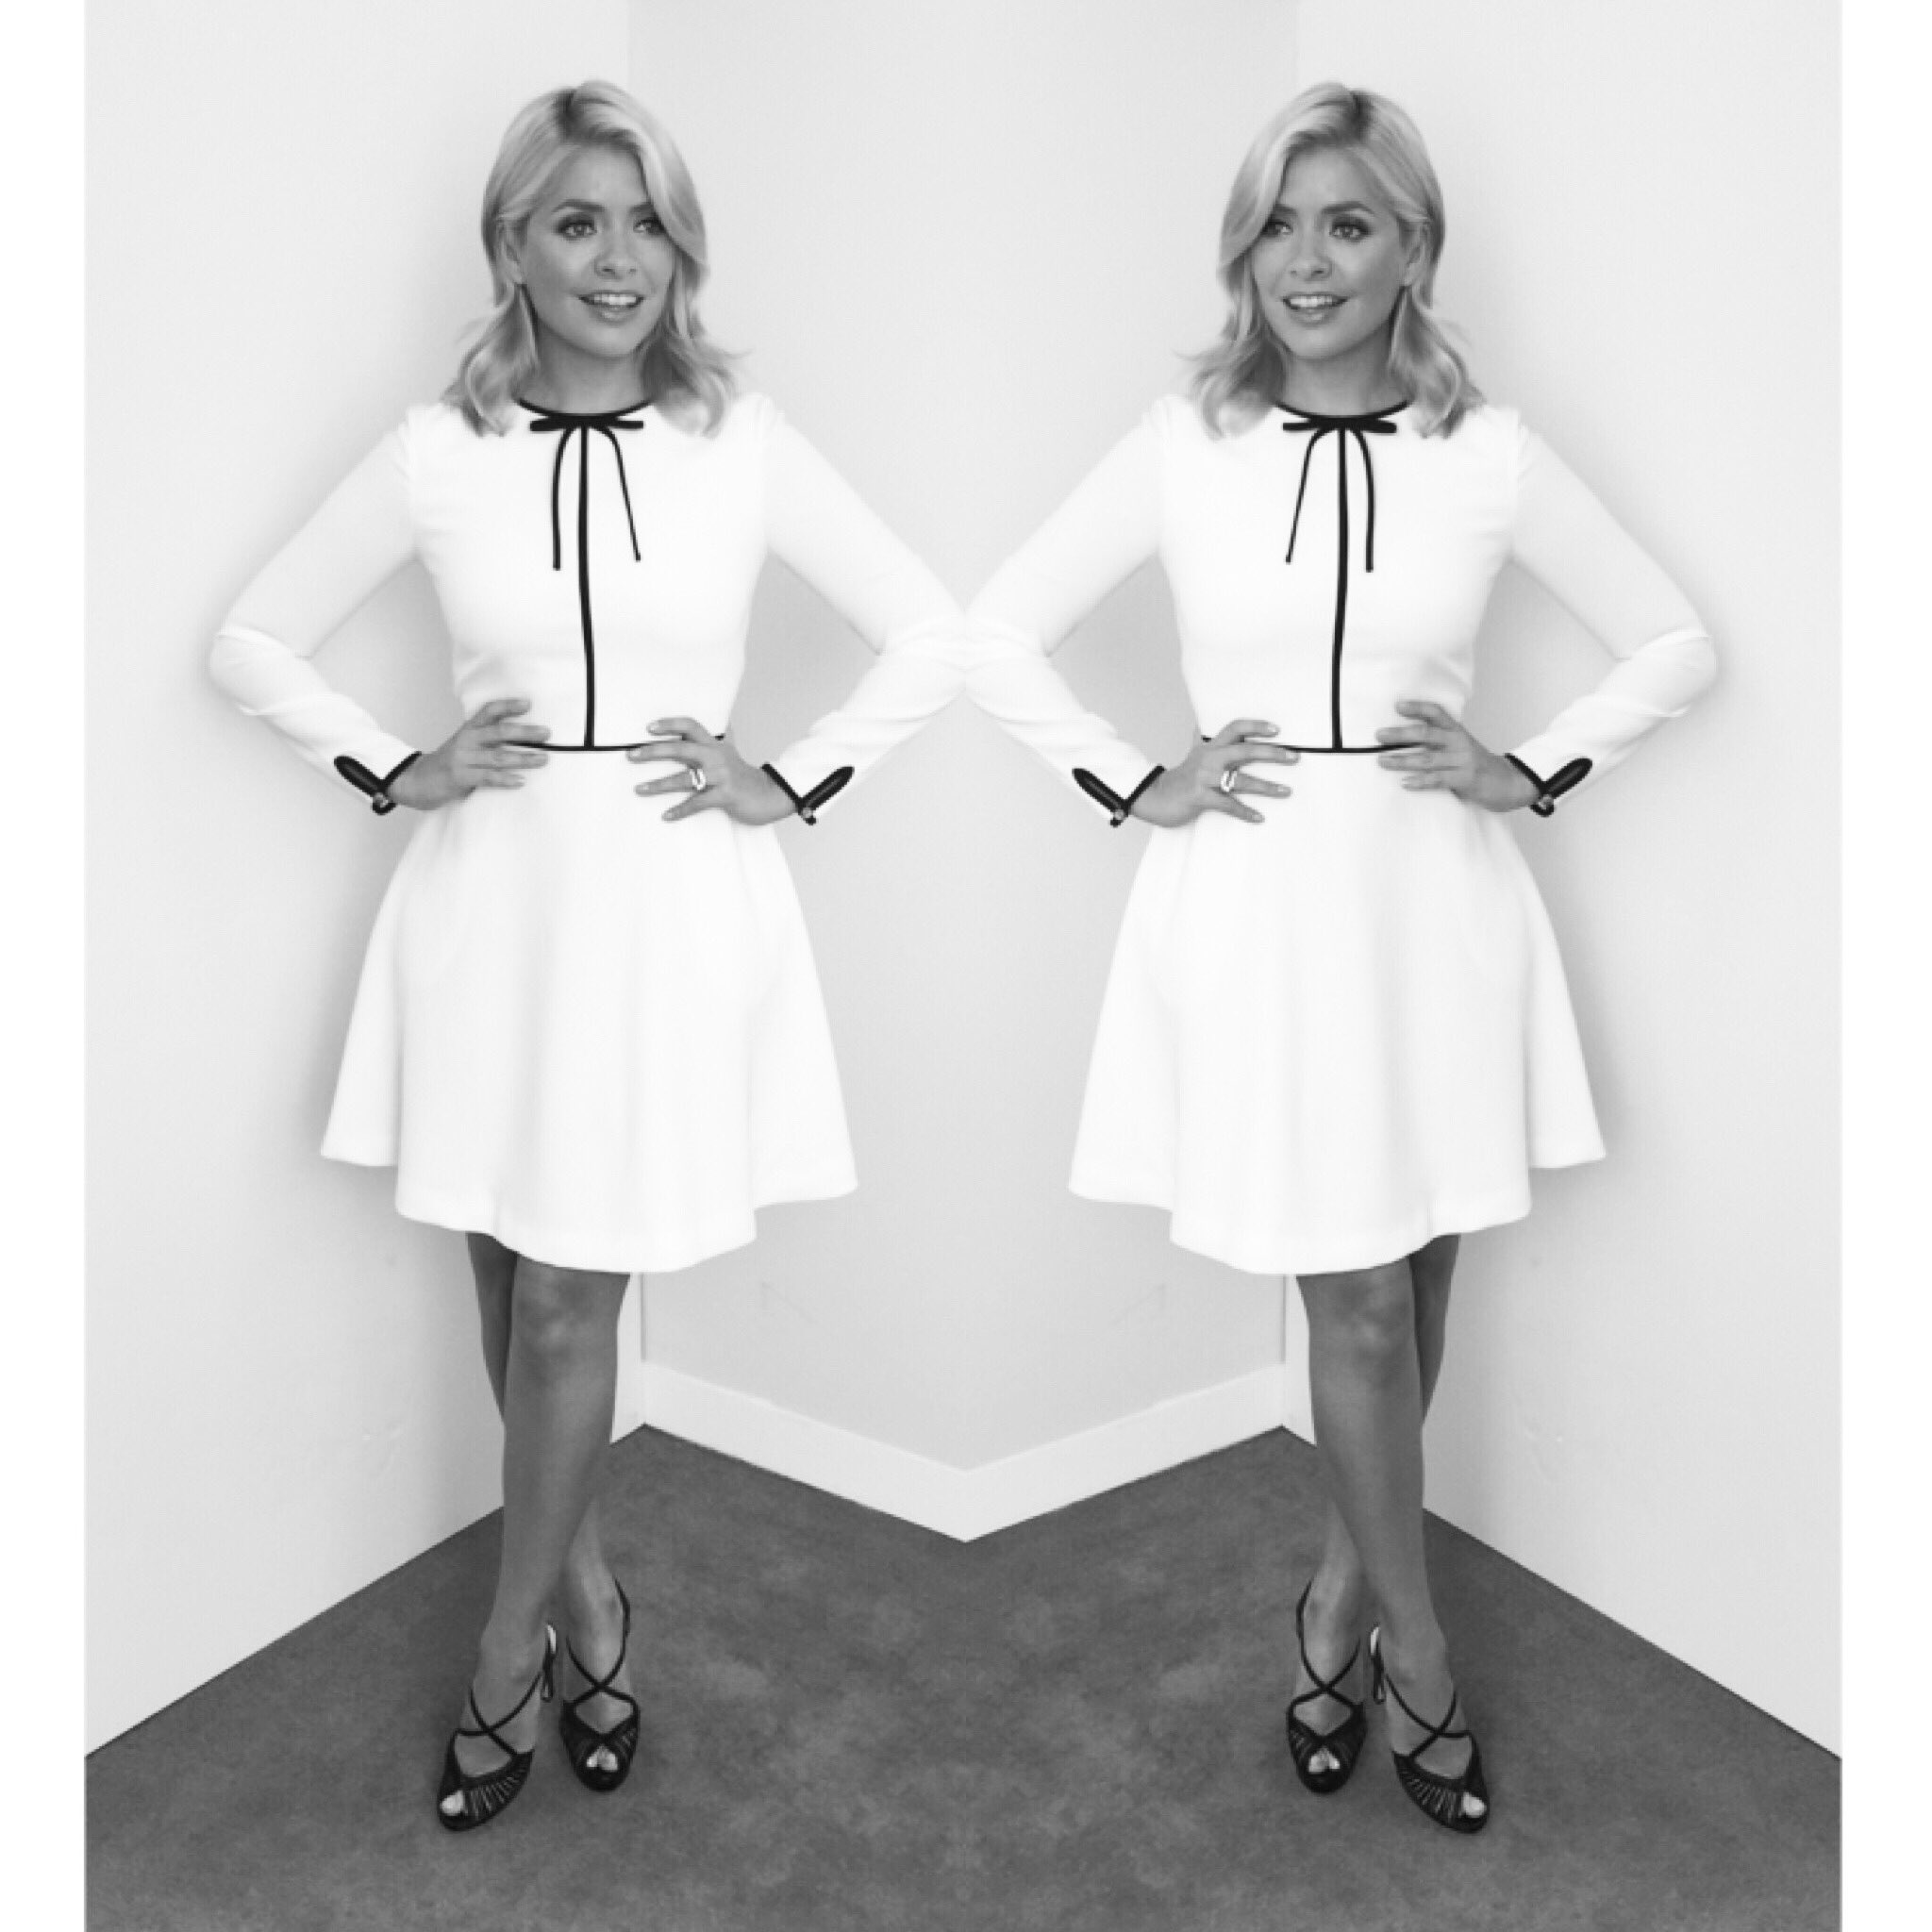 Today's look on @thismorning dress by Ted Baker and shoes by L K Bennett xxx https://t.co/d4SeIxOKvQ